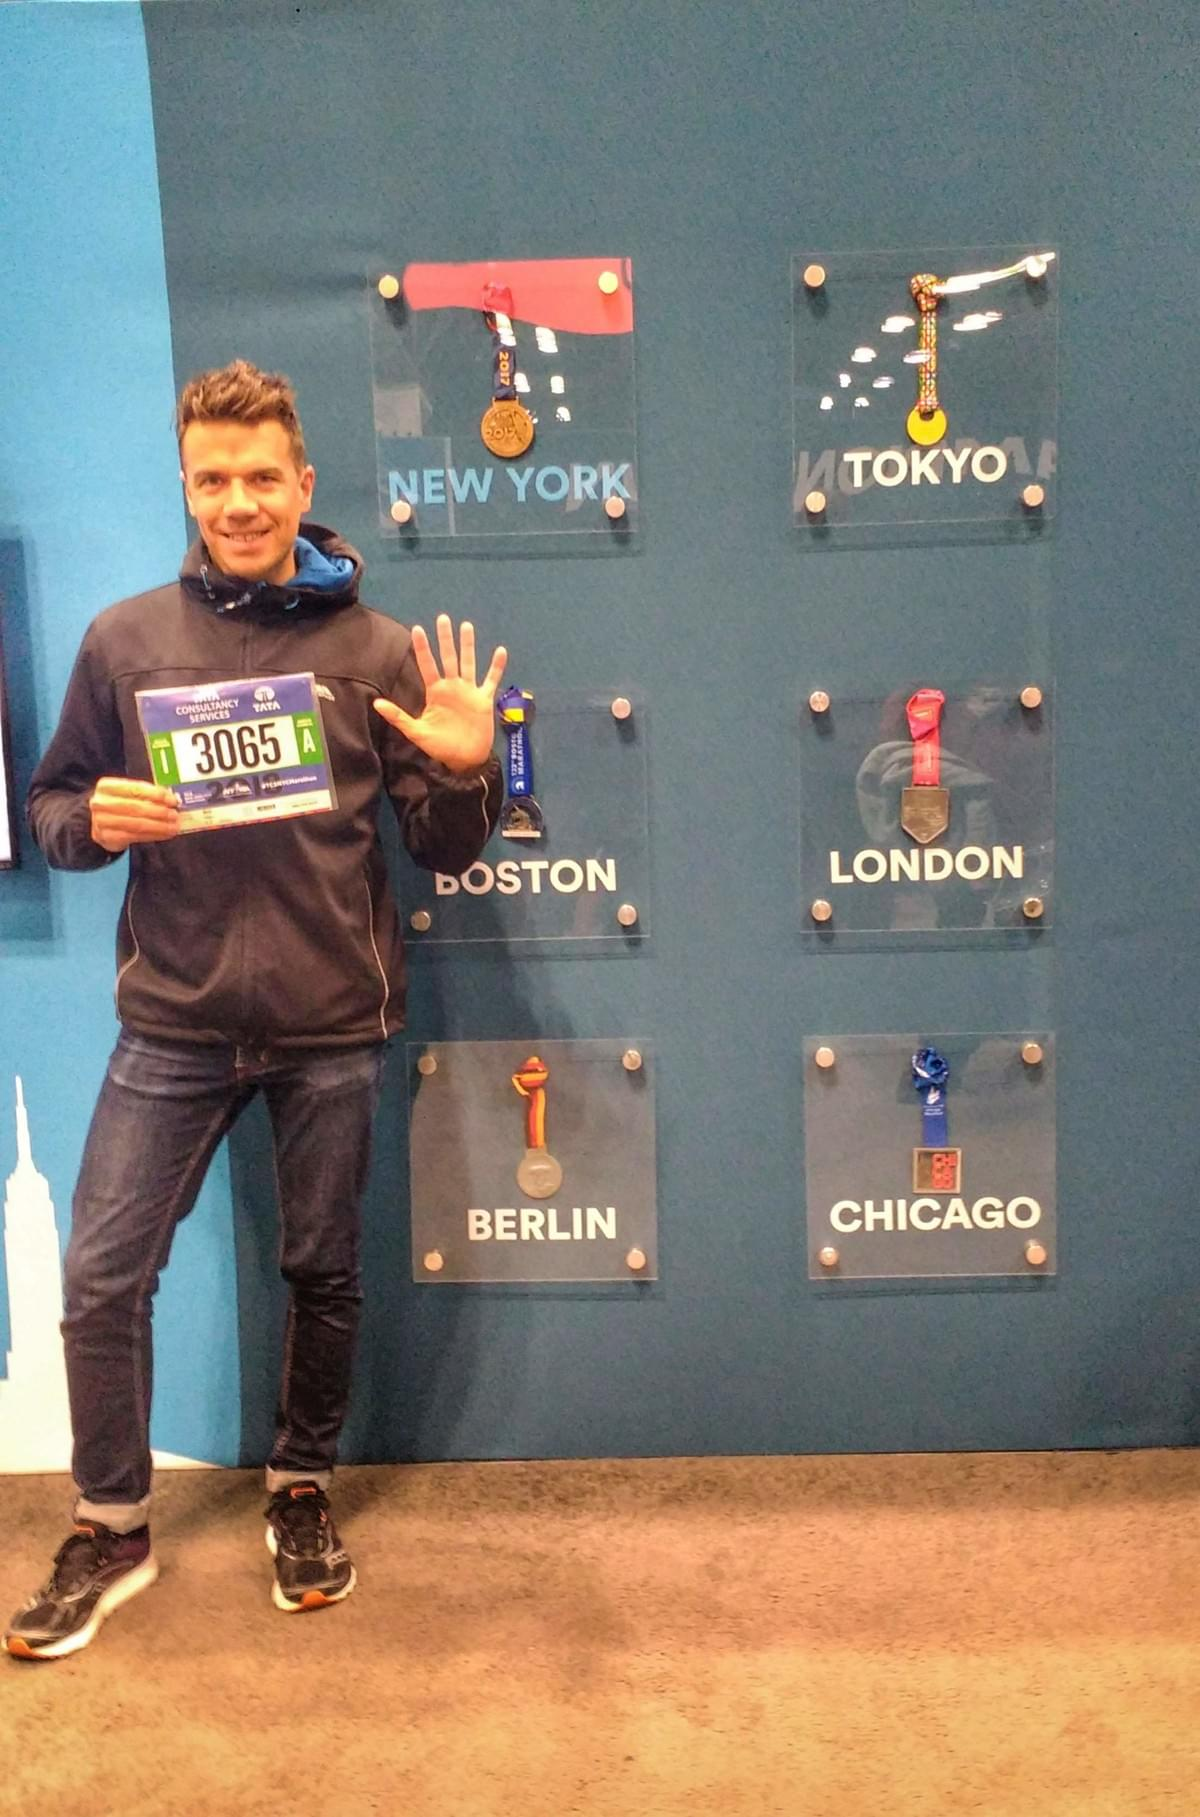 A runner holds his race number in front of the six world marathon major medals at the New York Marathon expo